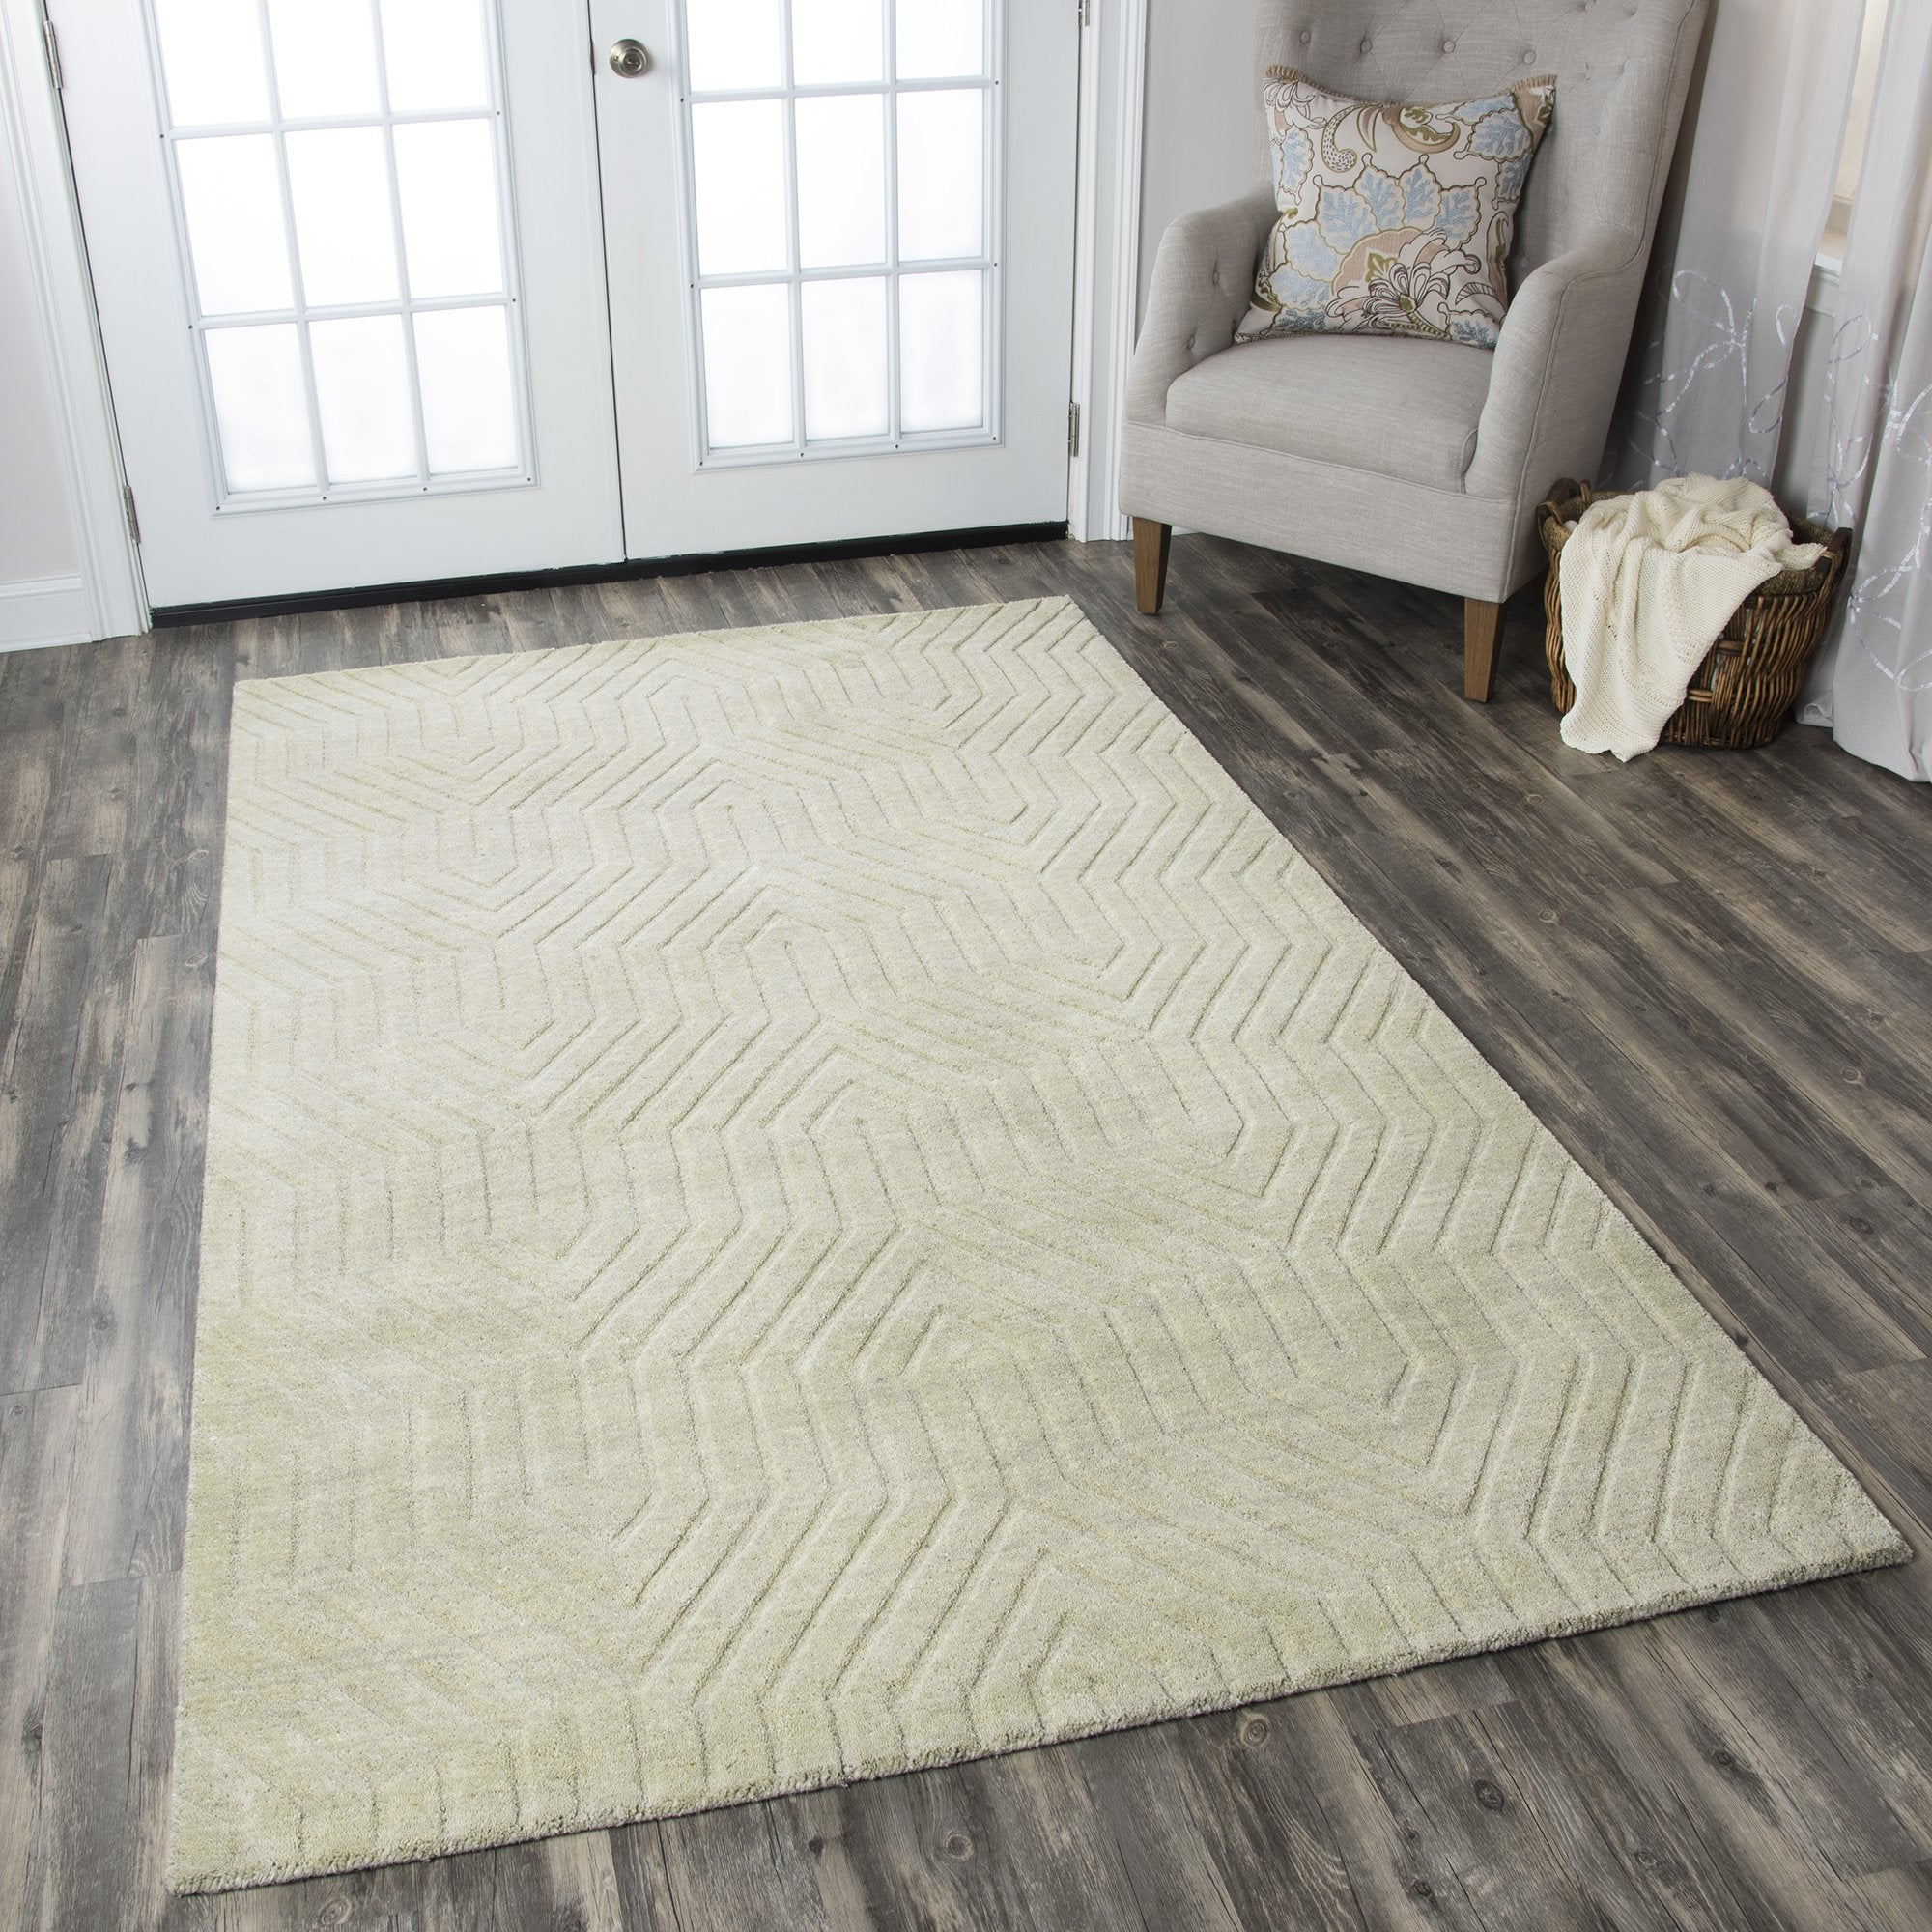 Rizzy Home Technique Tc8581 Light Gray Solid Area Rug